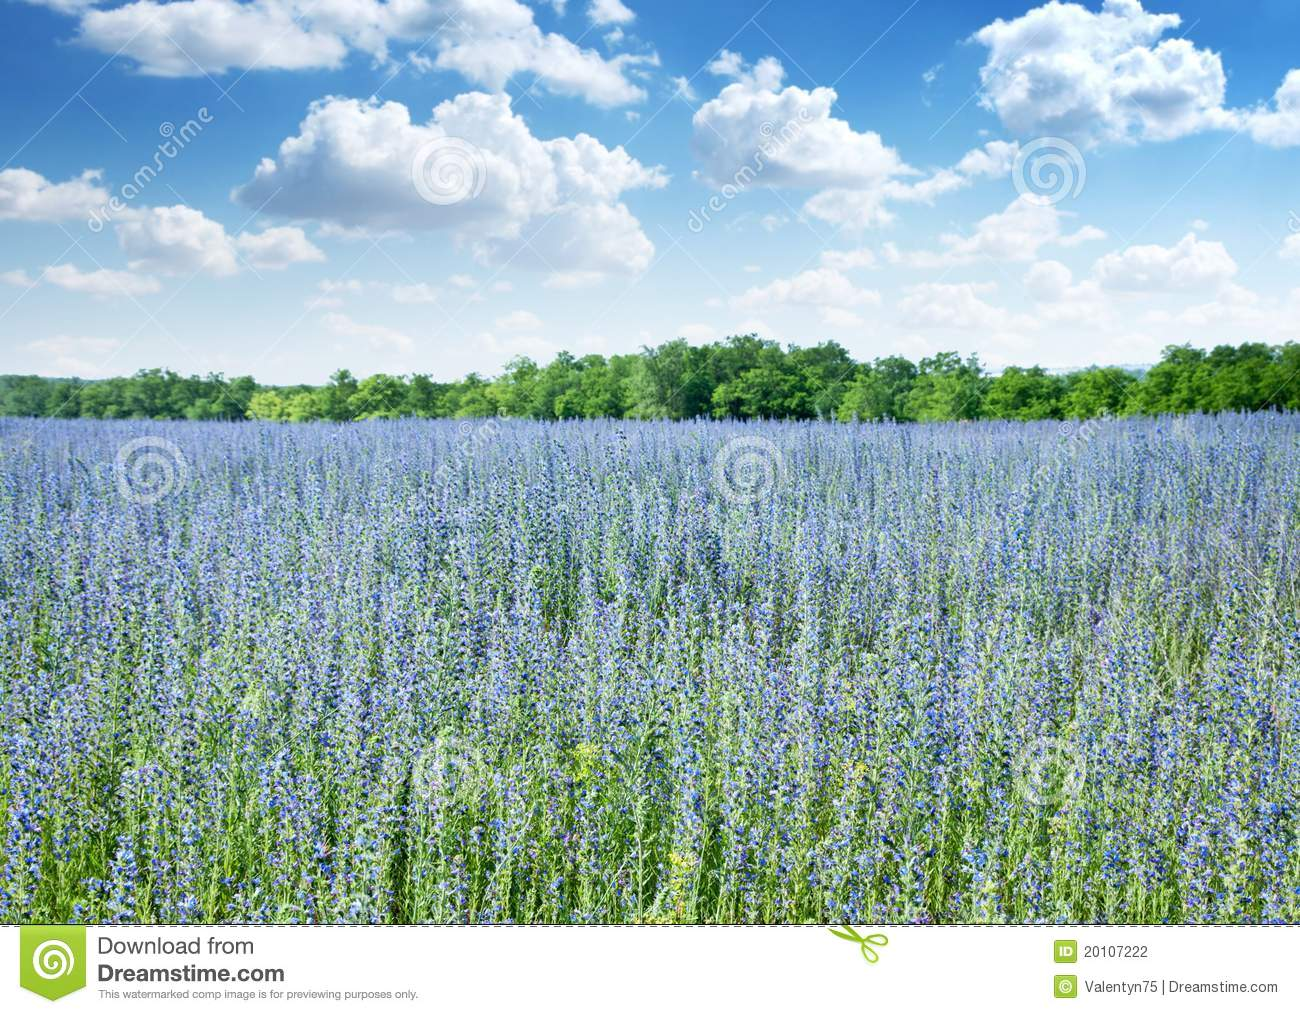 Beautiful field of wild flowers.